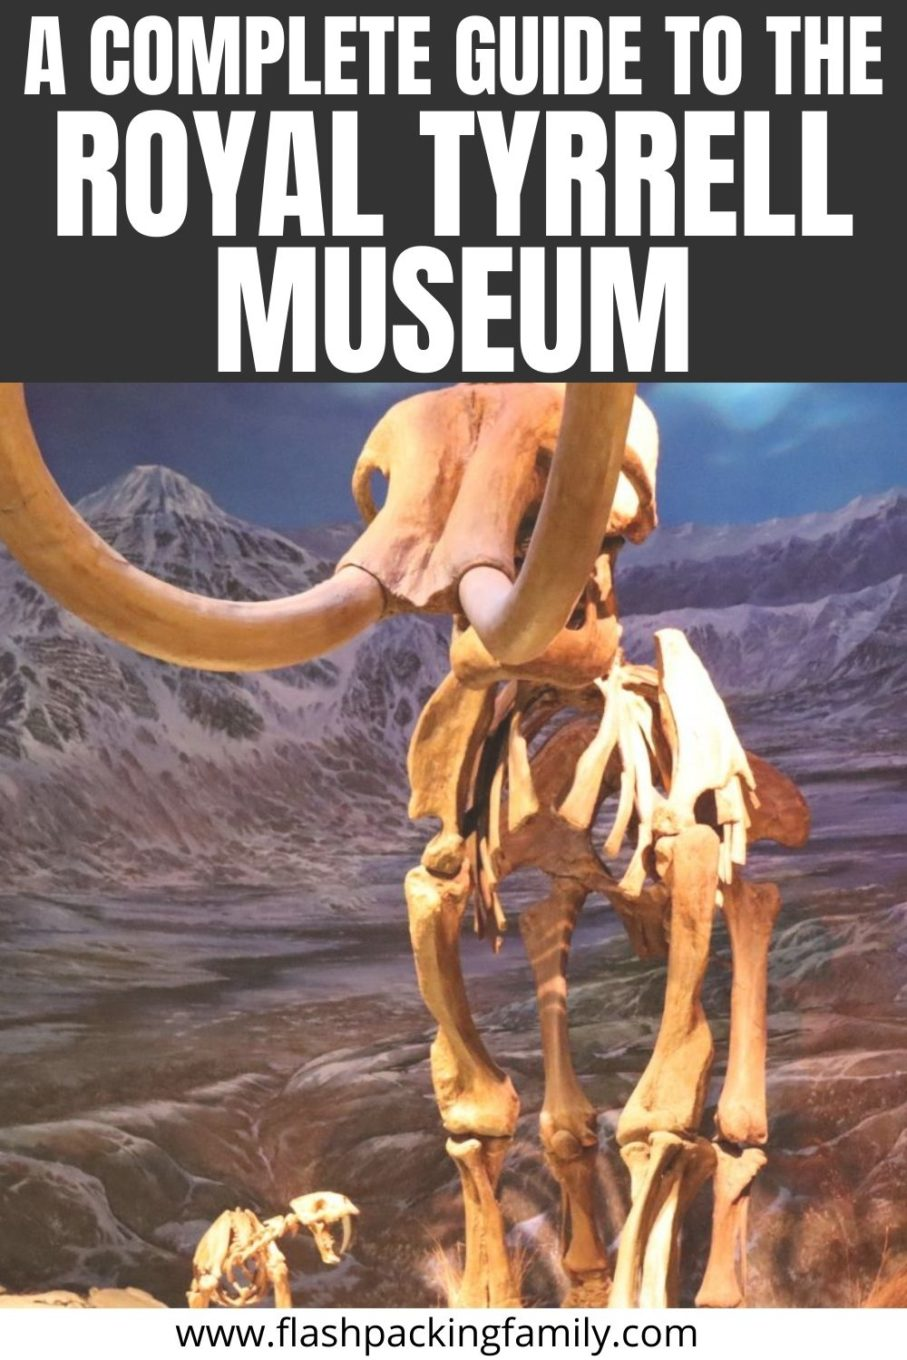 A Complete Guide to the Royal Tyrrell Museum in Canada